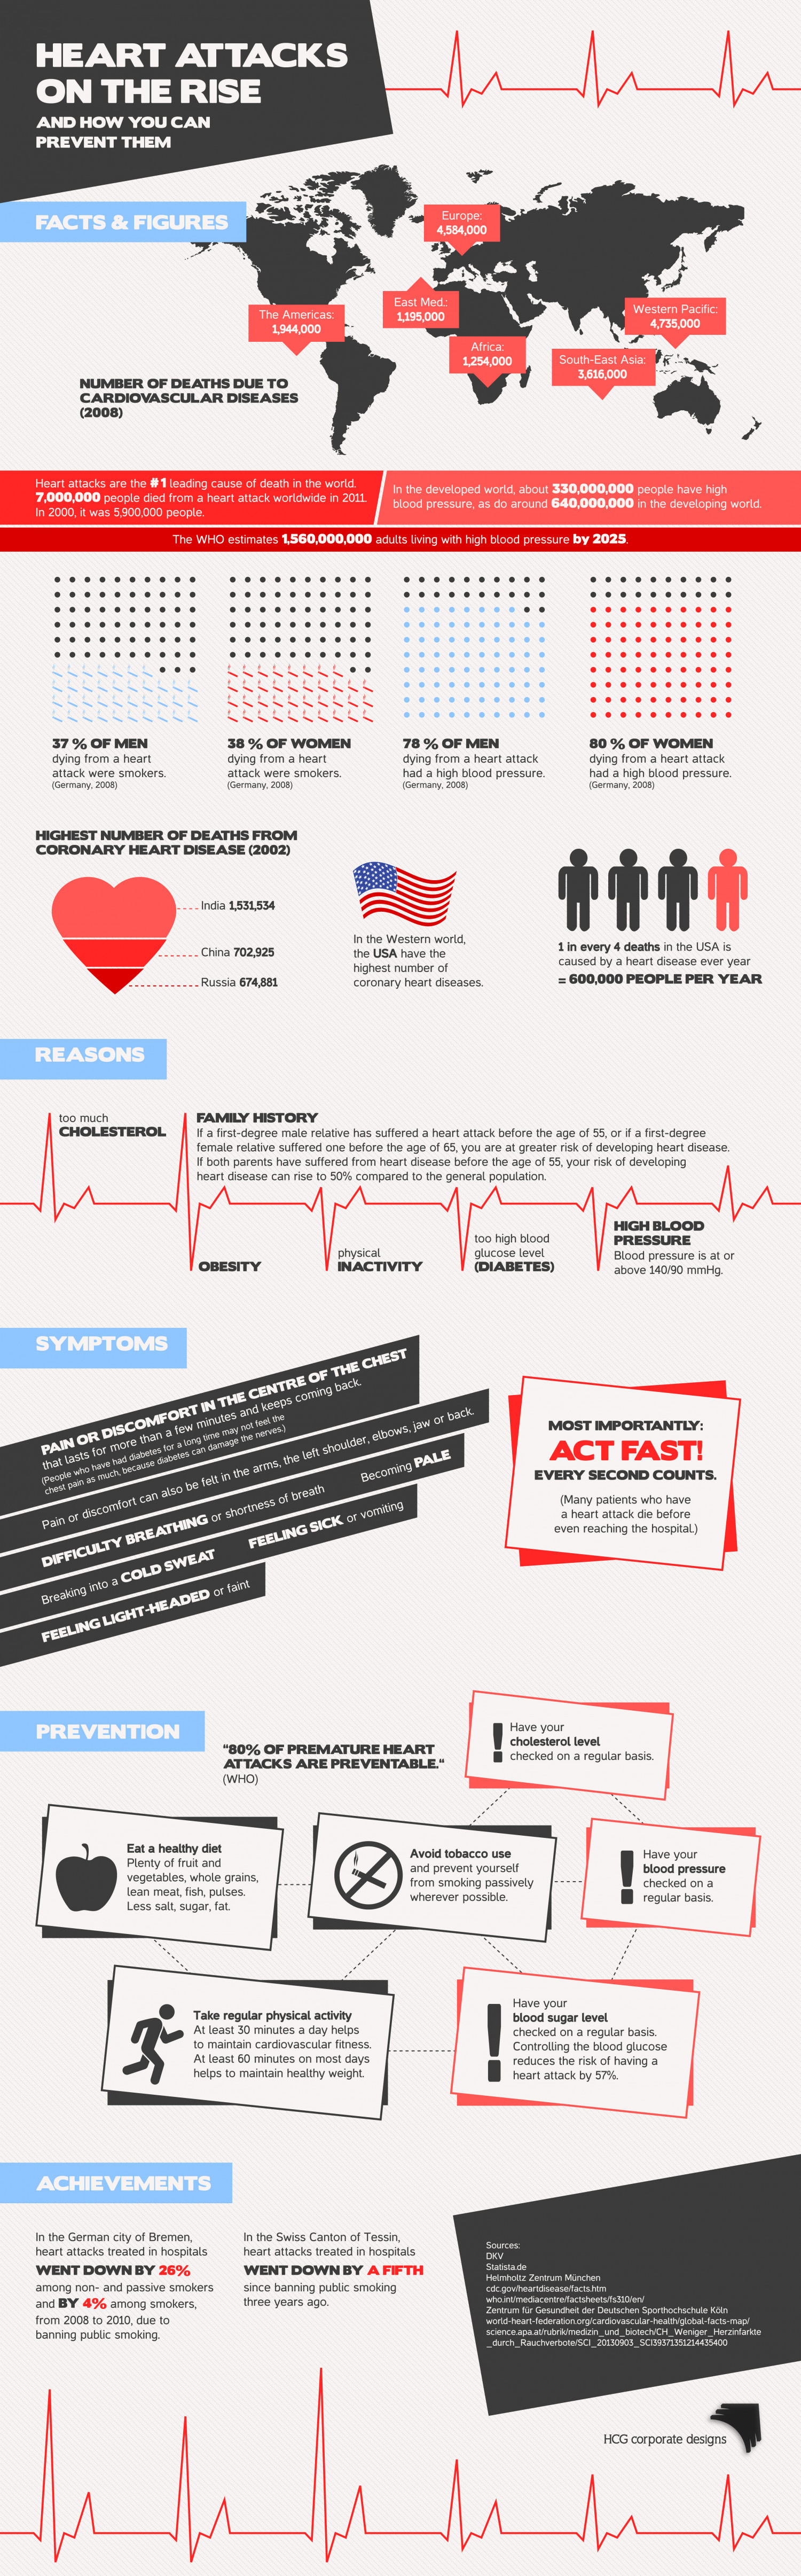 Heart Attacks on the Rise Infographic